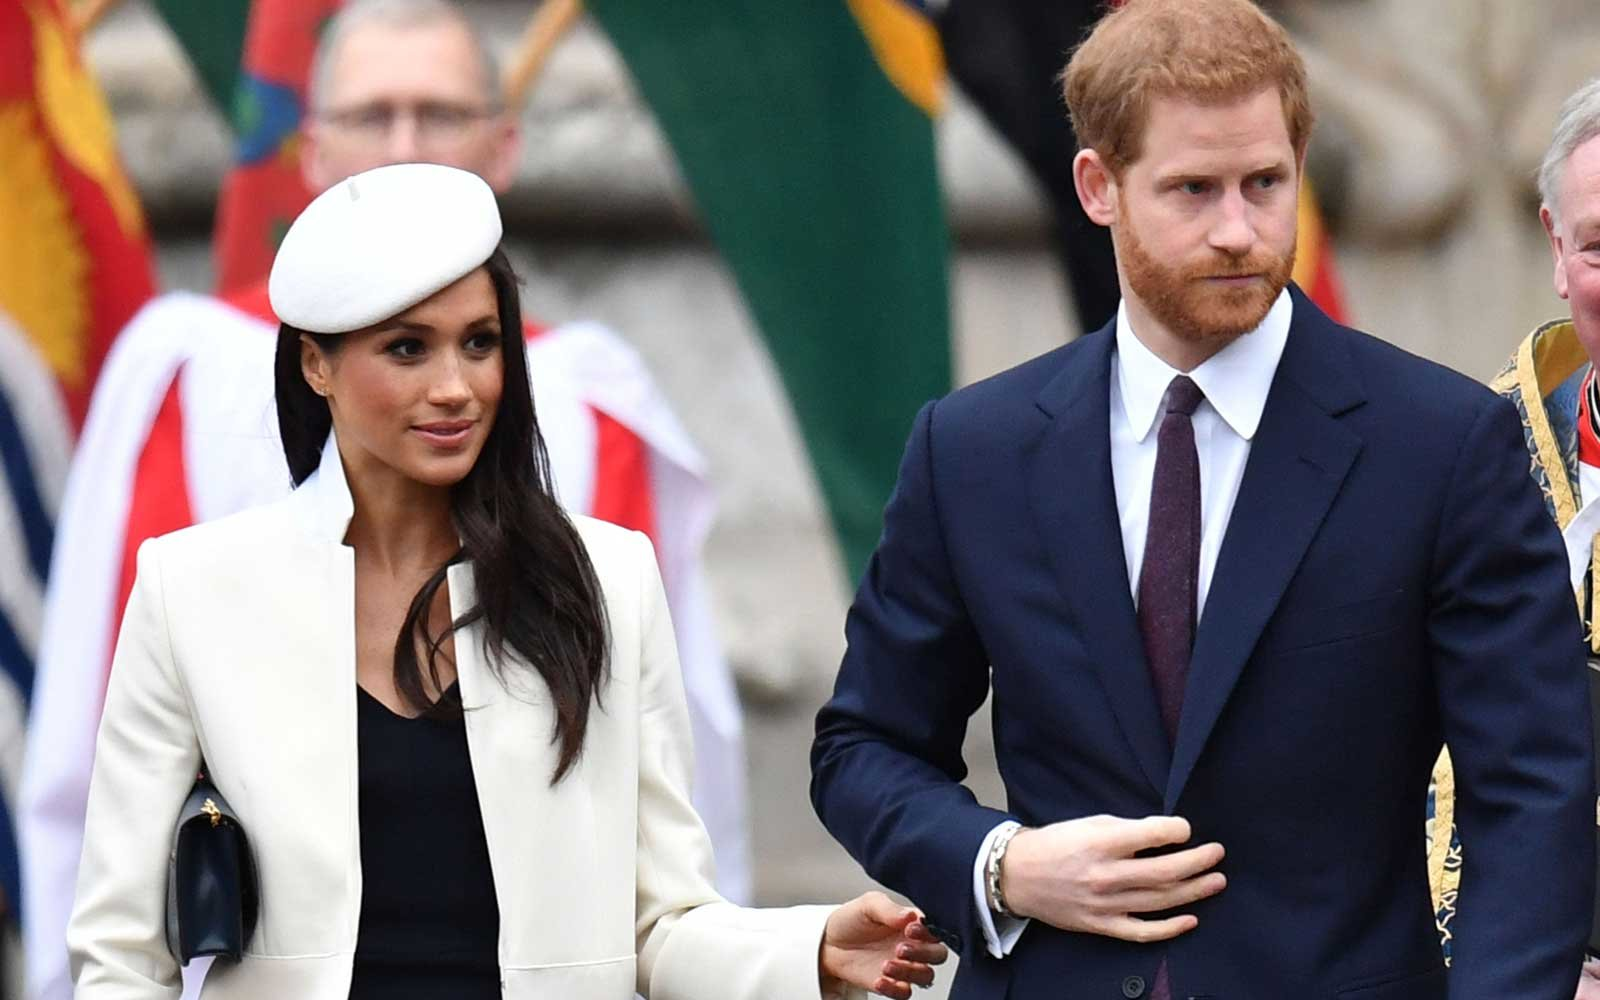 Prince Harry Refuses To Sign A Pre-Nup Before Marrying Meghan Markle